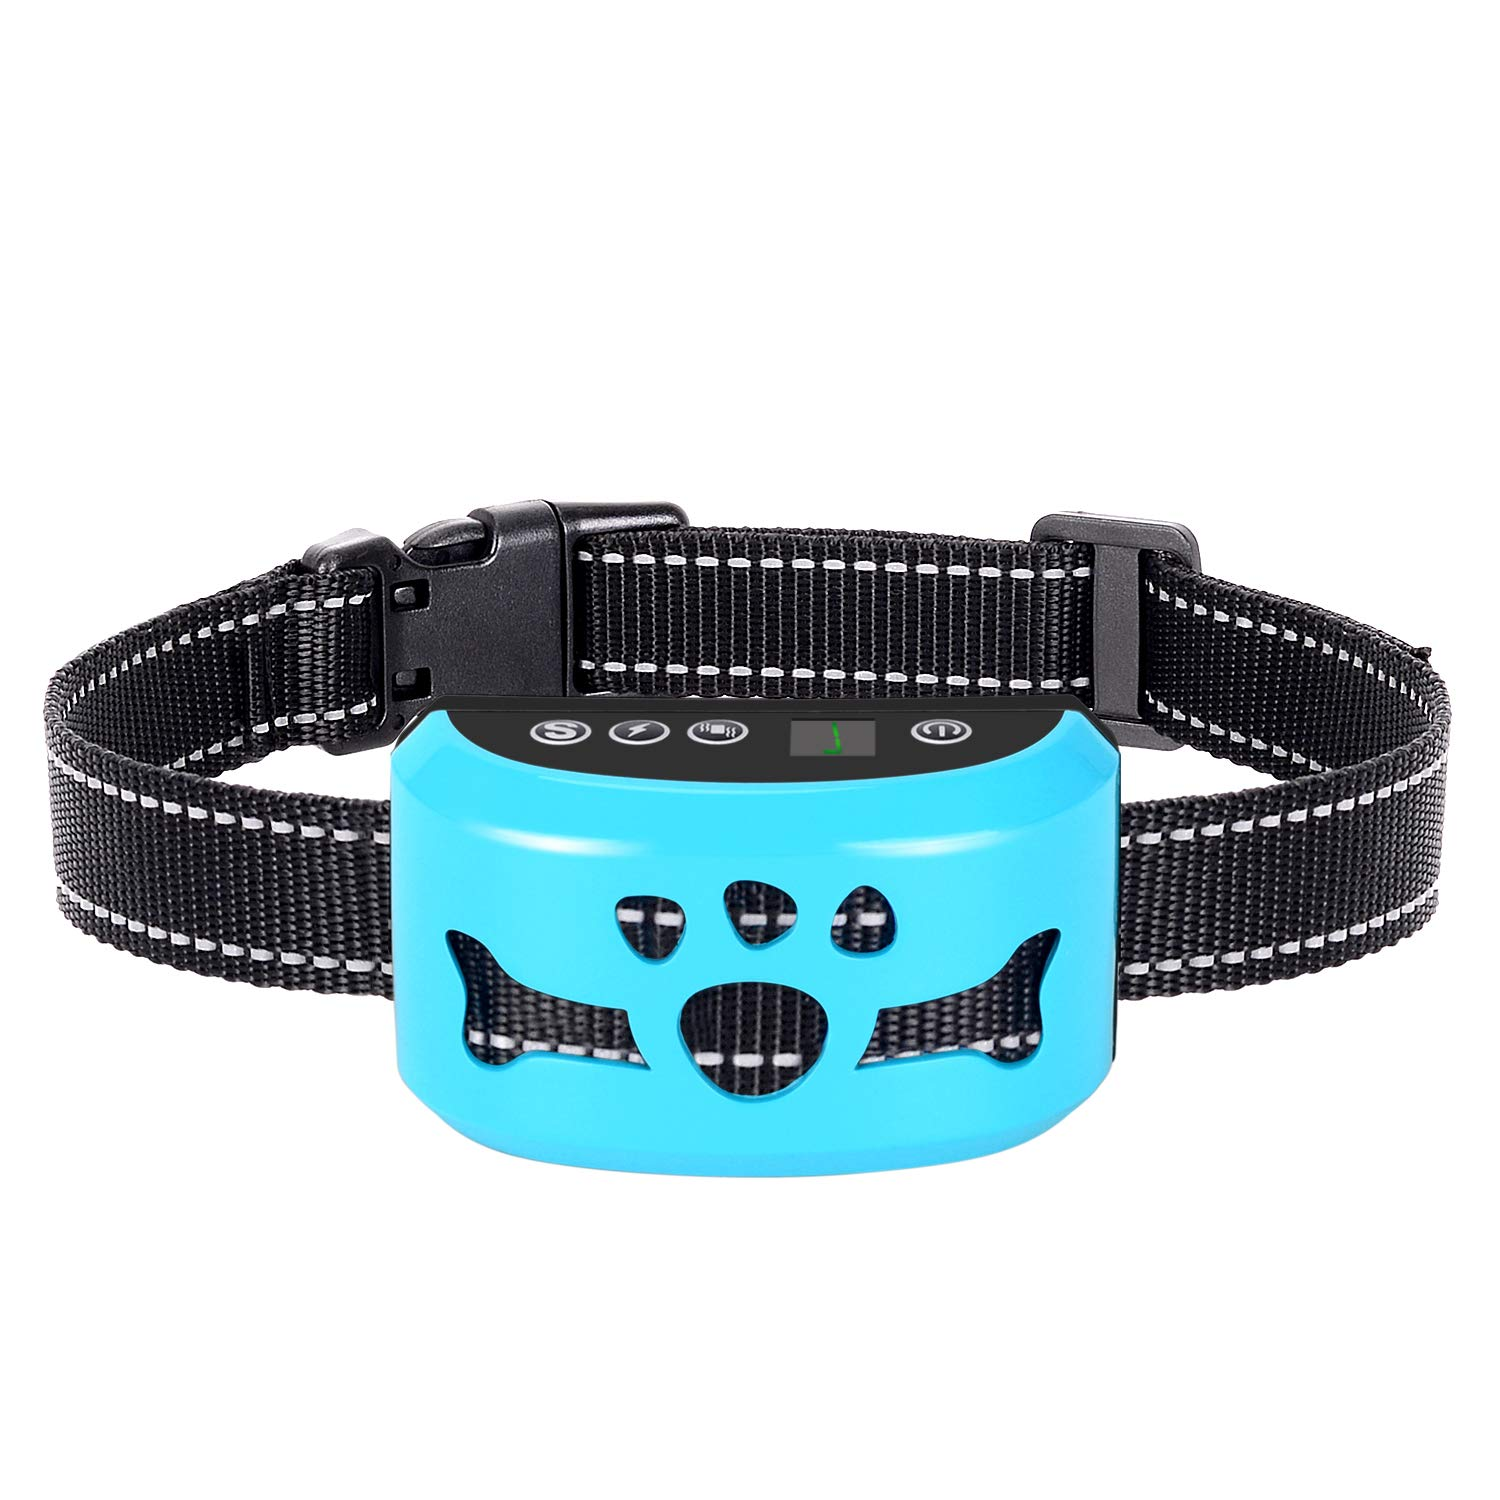 AHJDL Dog Bark Collar-7 Adjustable Sensitivity and Intensity Levels-Dual Anti-Barking Modes-Rechargeable-Rainproof-No Barking Control Dog Shock Collar for Small Medium Large Dogs by AHJDL